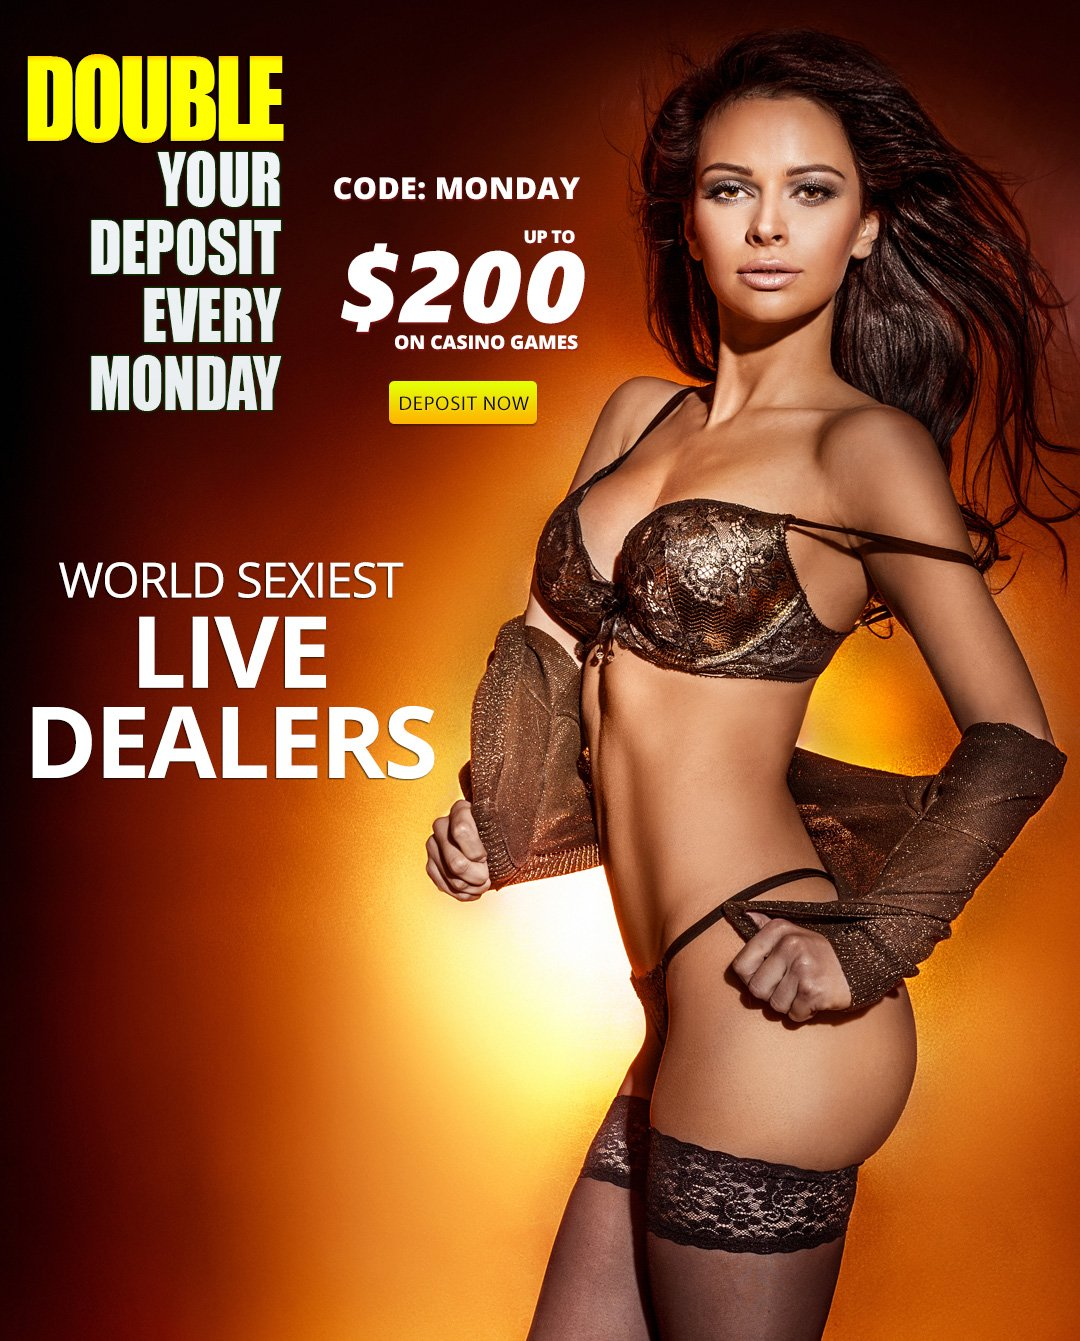 double-your-deposit-every-monday-code-monday